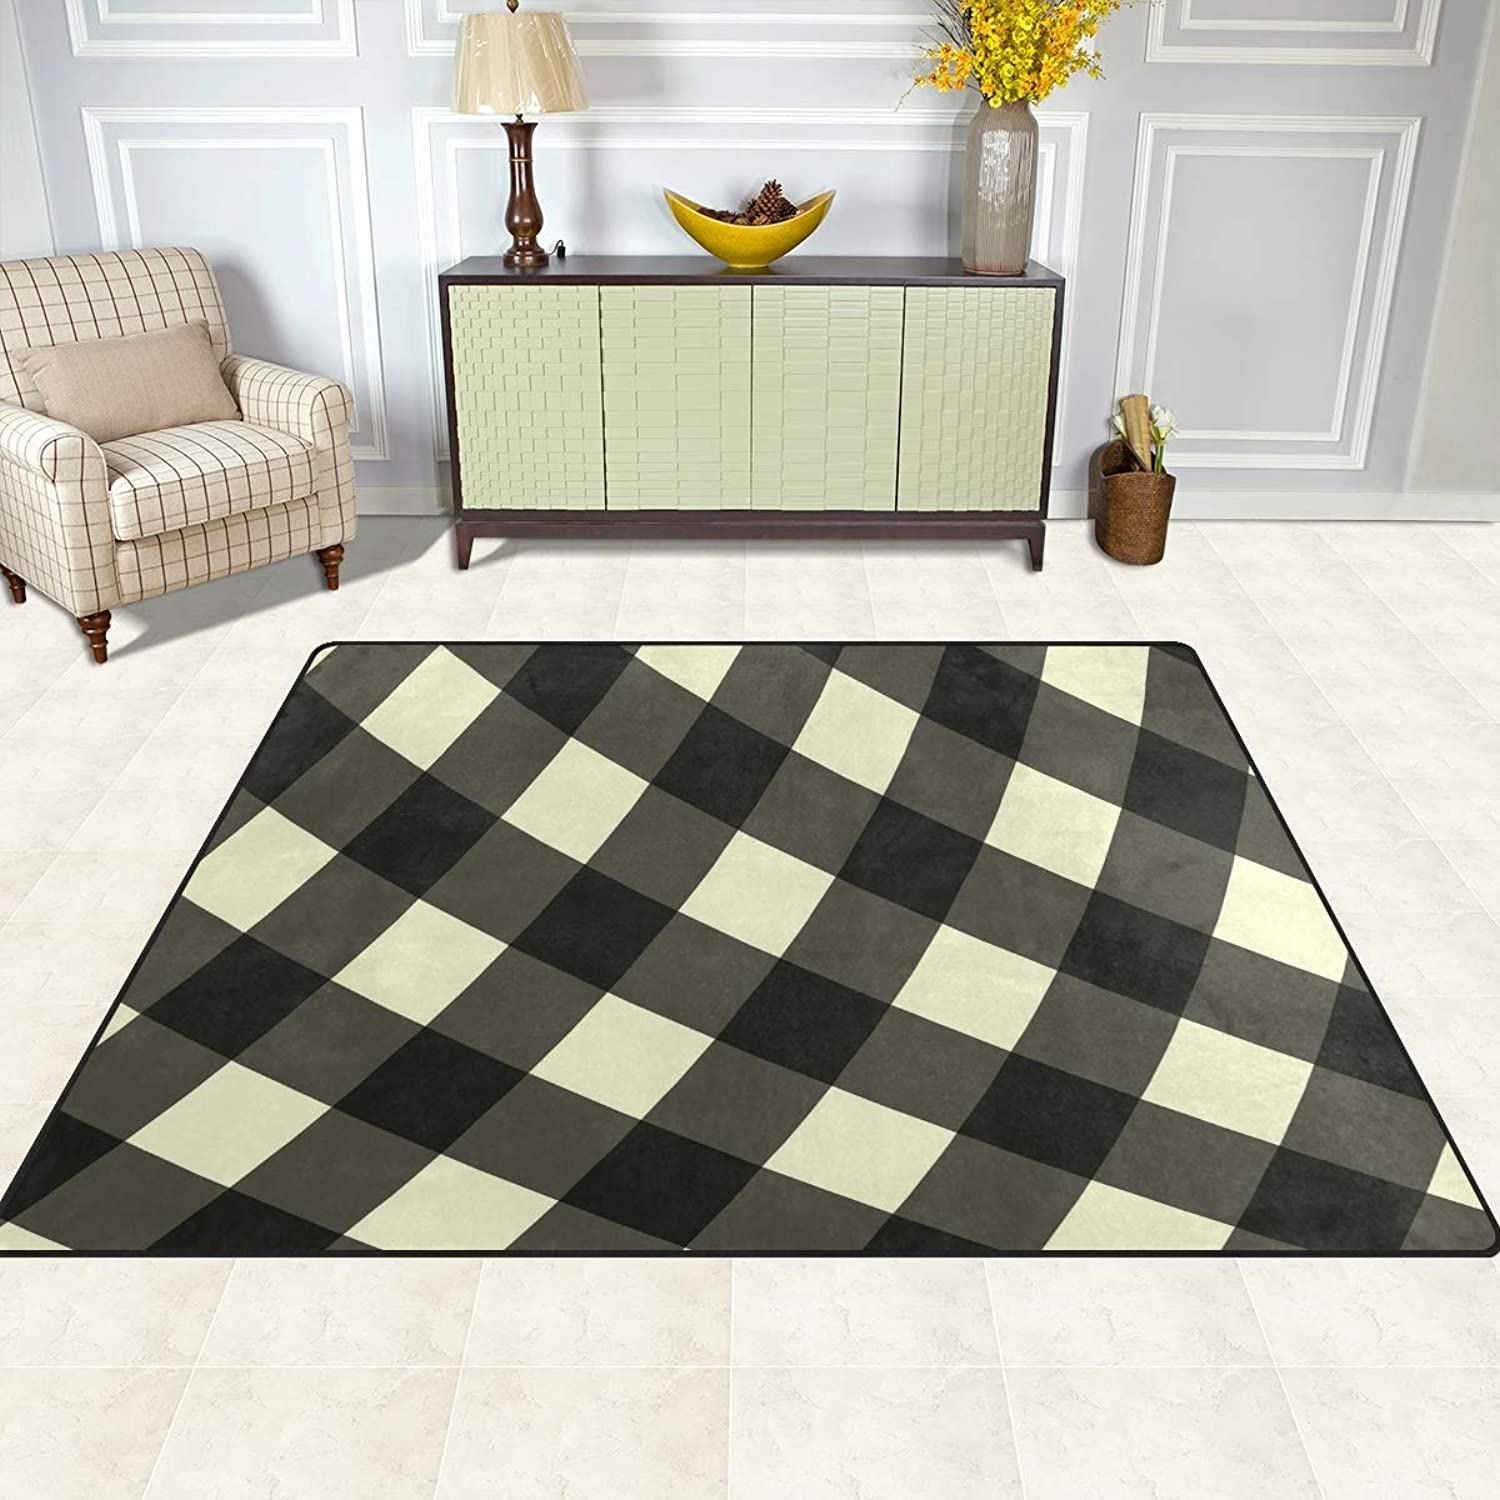 FAJRO Striped-Yellow Black Checker Gingham Rugs for entryway Doormat Area Rug Multipattern Door Mat shoes Scraper Home Dec Anti-Slip Indoor Outdoor